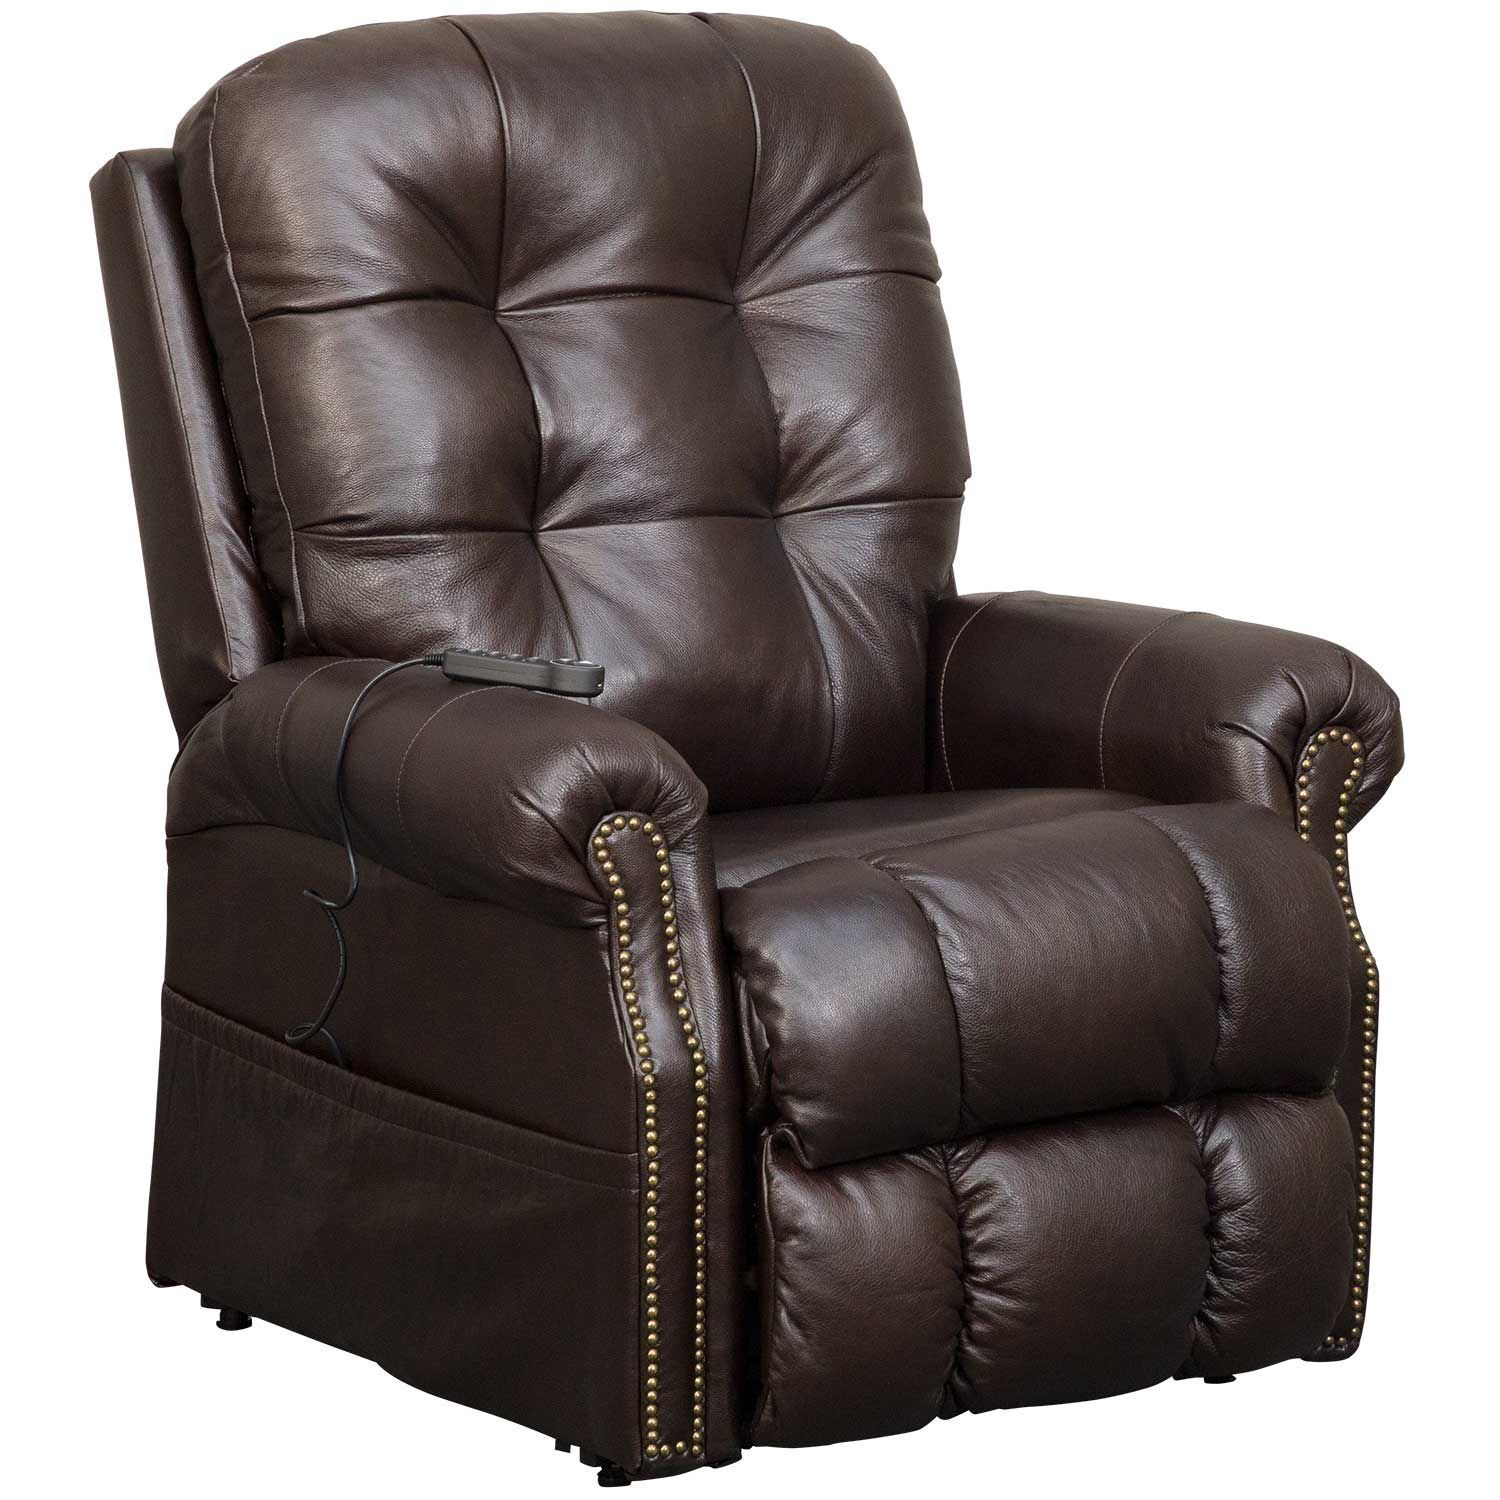 Madison Italian Leather Power Lift Chair 4891 Jackson Furniture Catnapper Afw Com